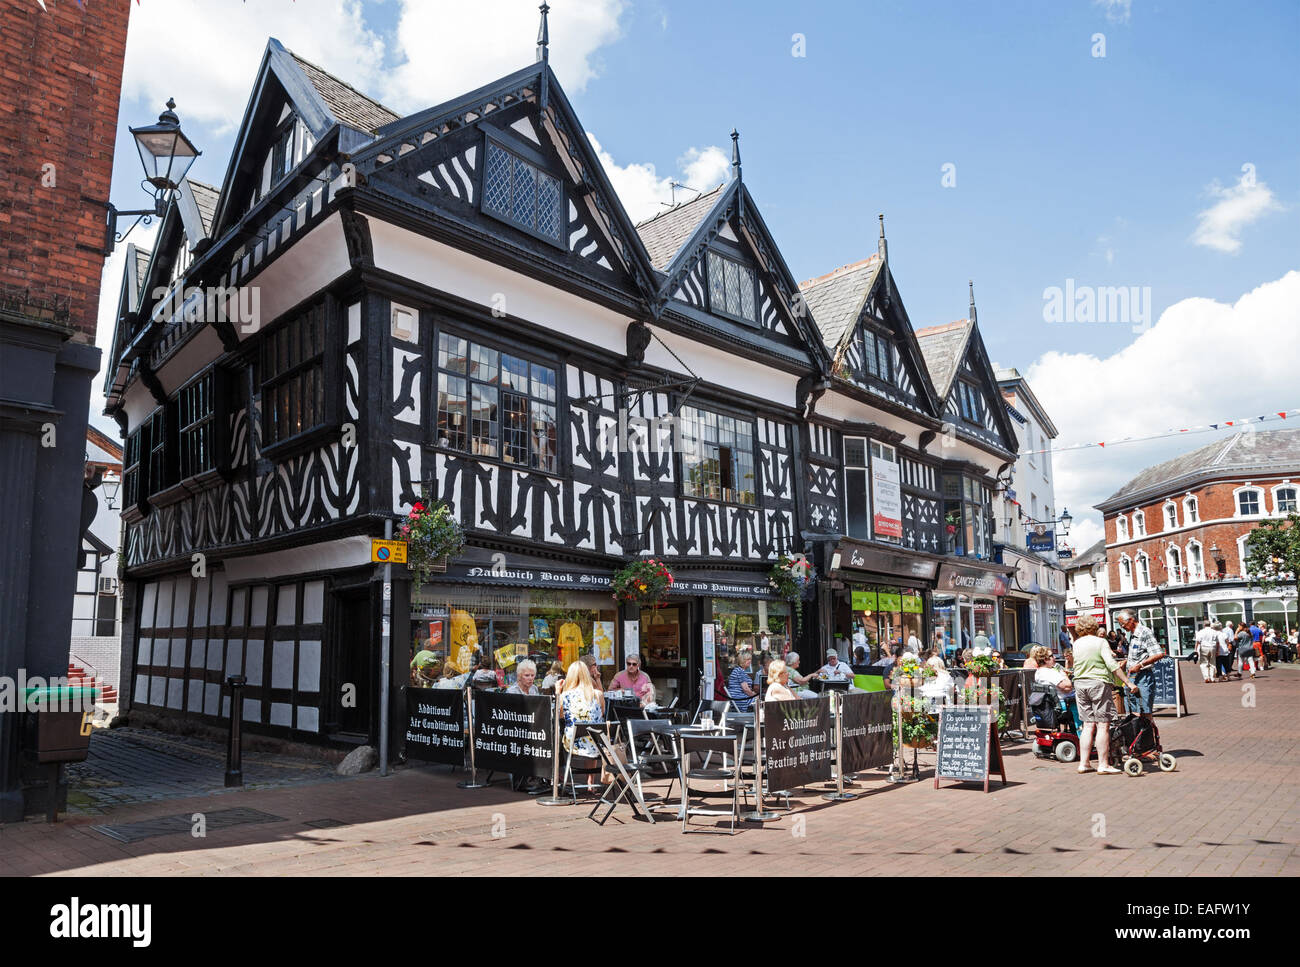 An outdoor pavement cafe in High Street in Nantwich Cheshire England UK - Stock Image